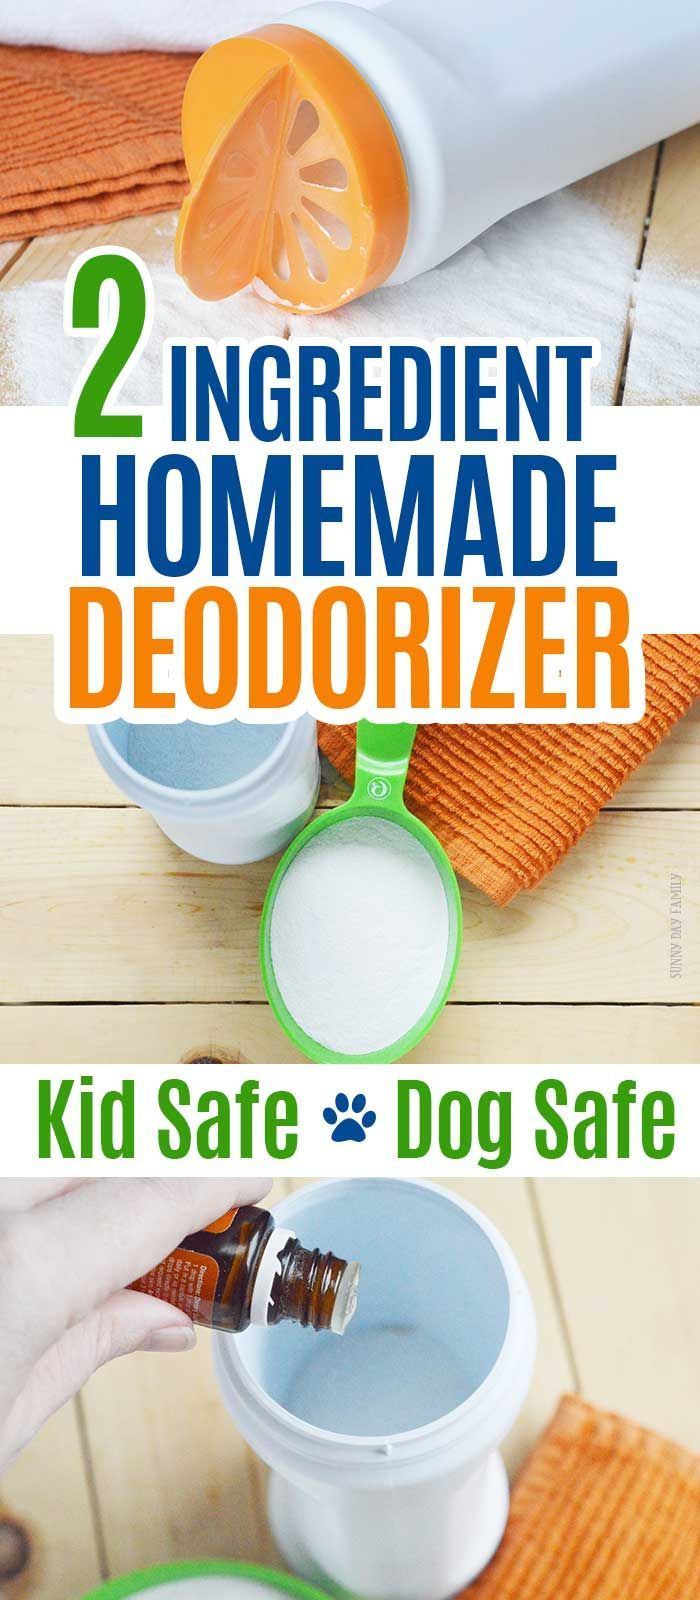 2 Ingredient Homemade Deodorizer To Make Your Whole House